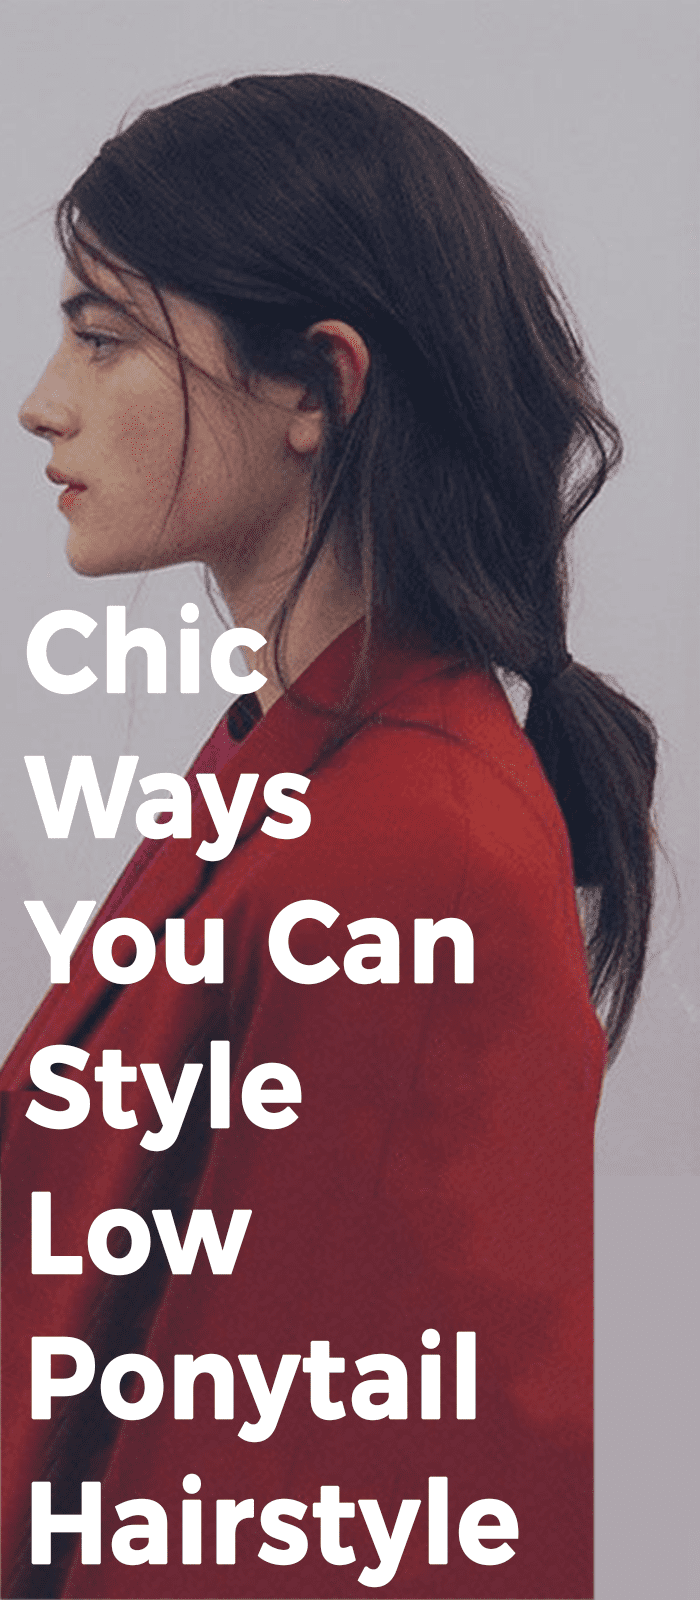 Chic Ways You Can Style Low Ponytail Hairstyle!